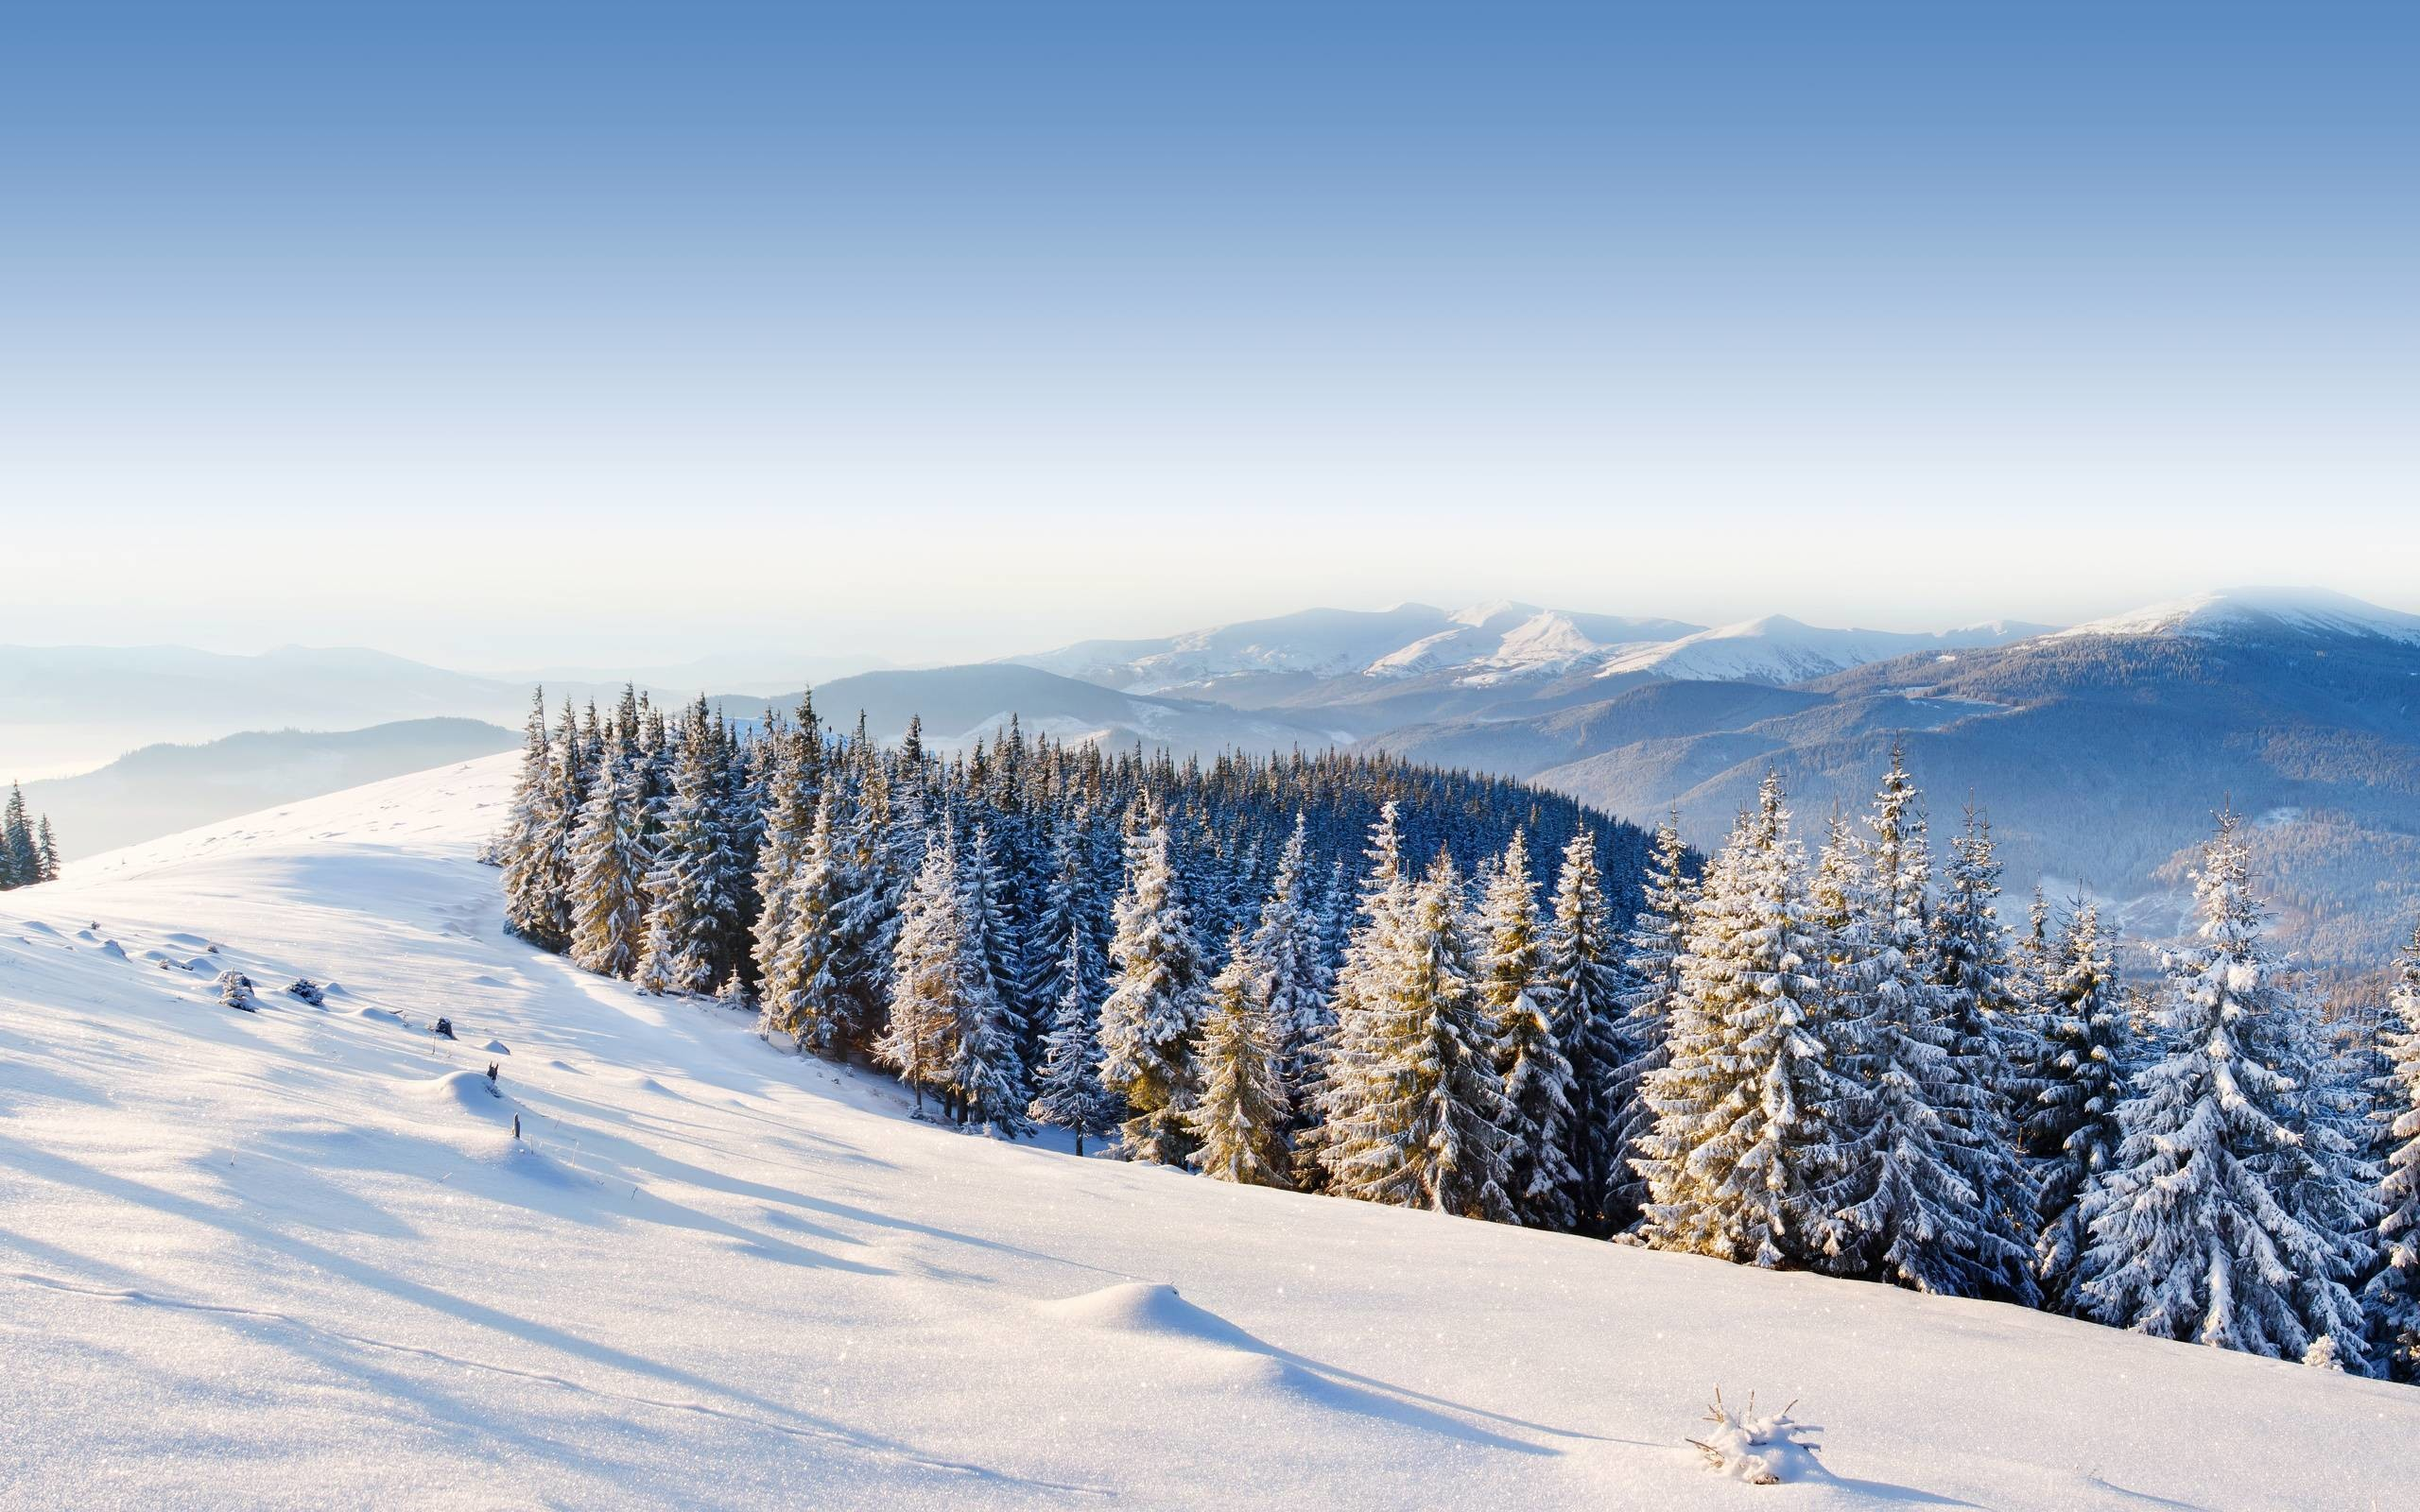 Daily Wallpaper: Winter in the Mountains   I Like To Waste My Time